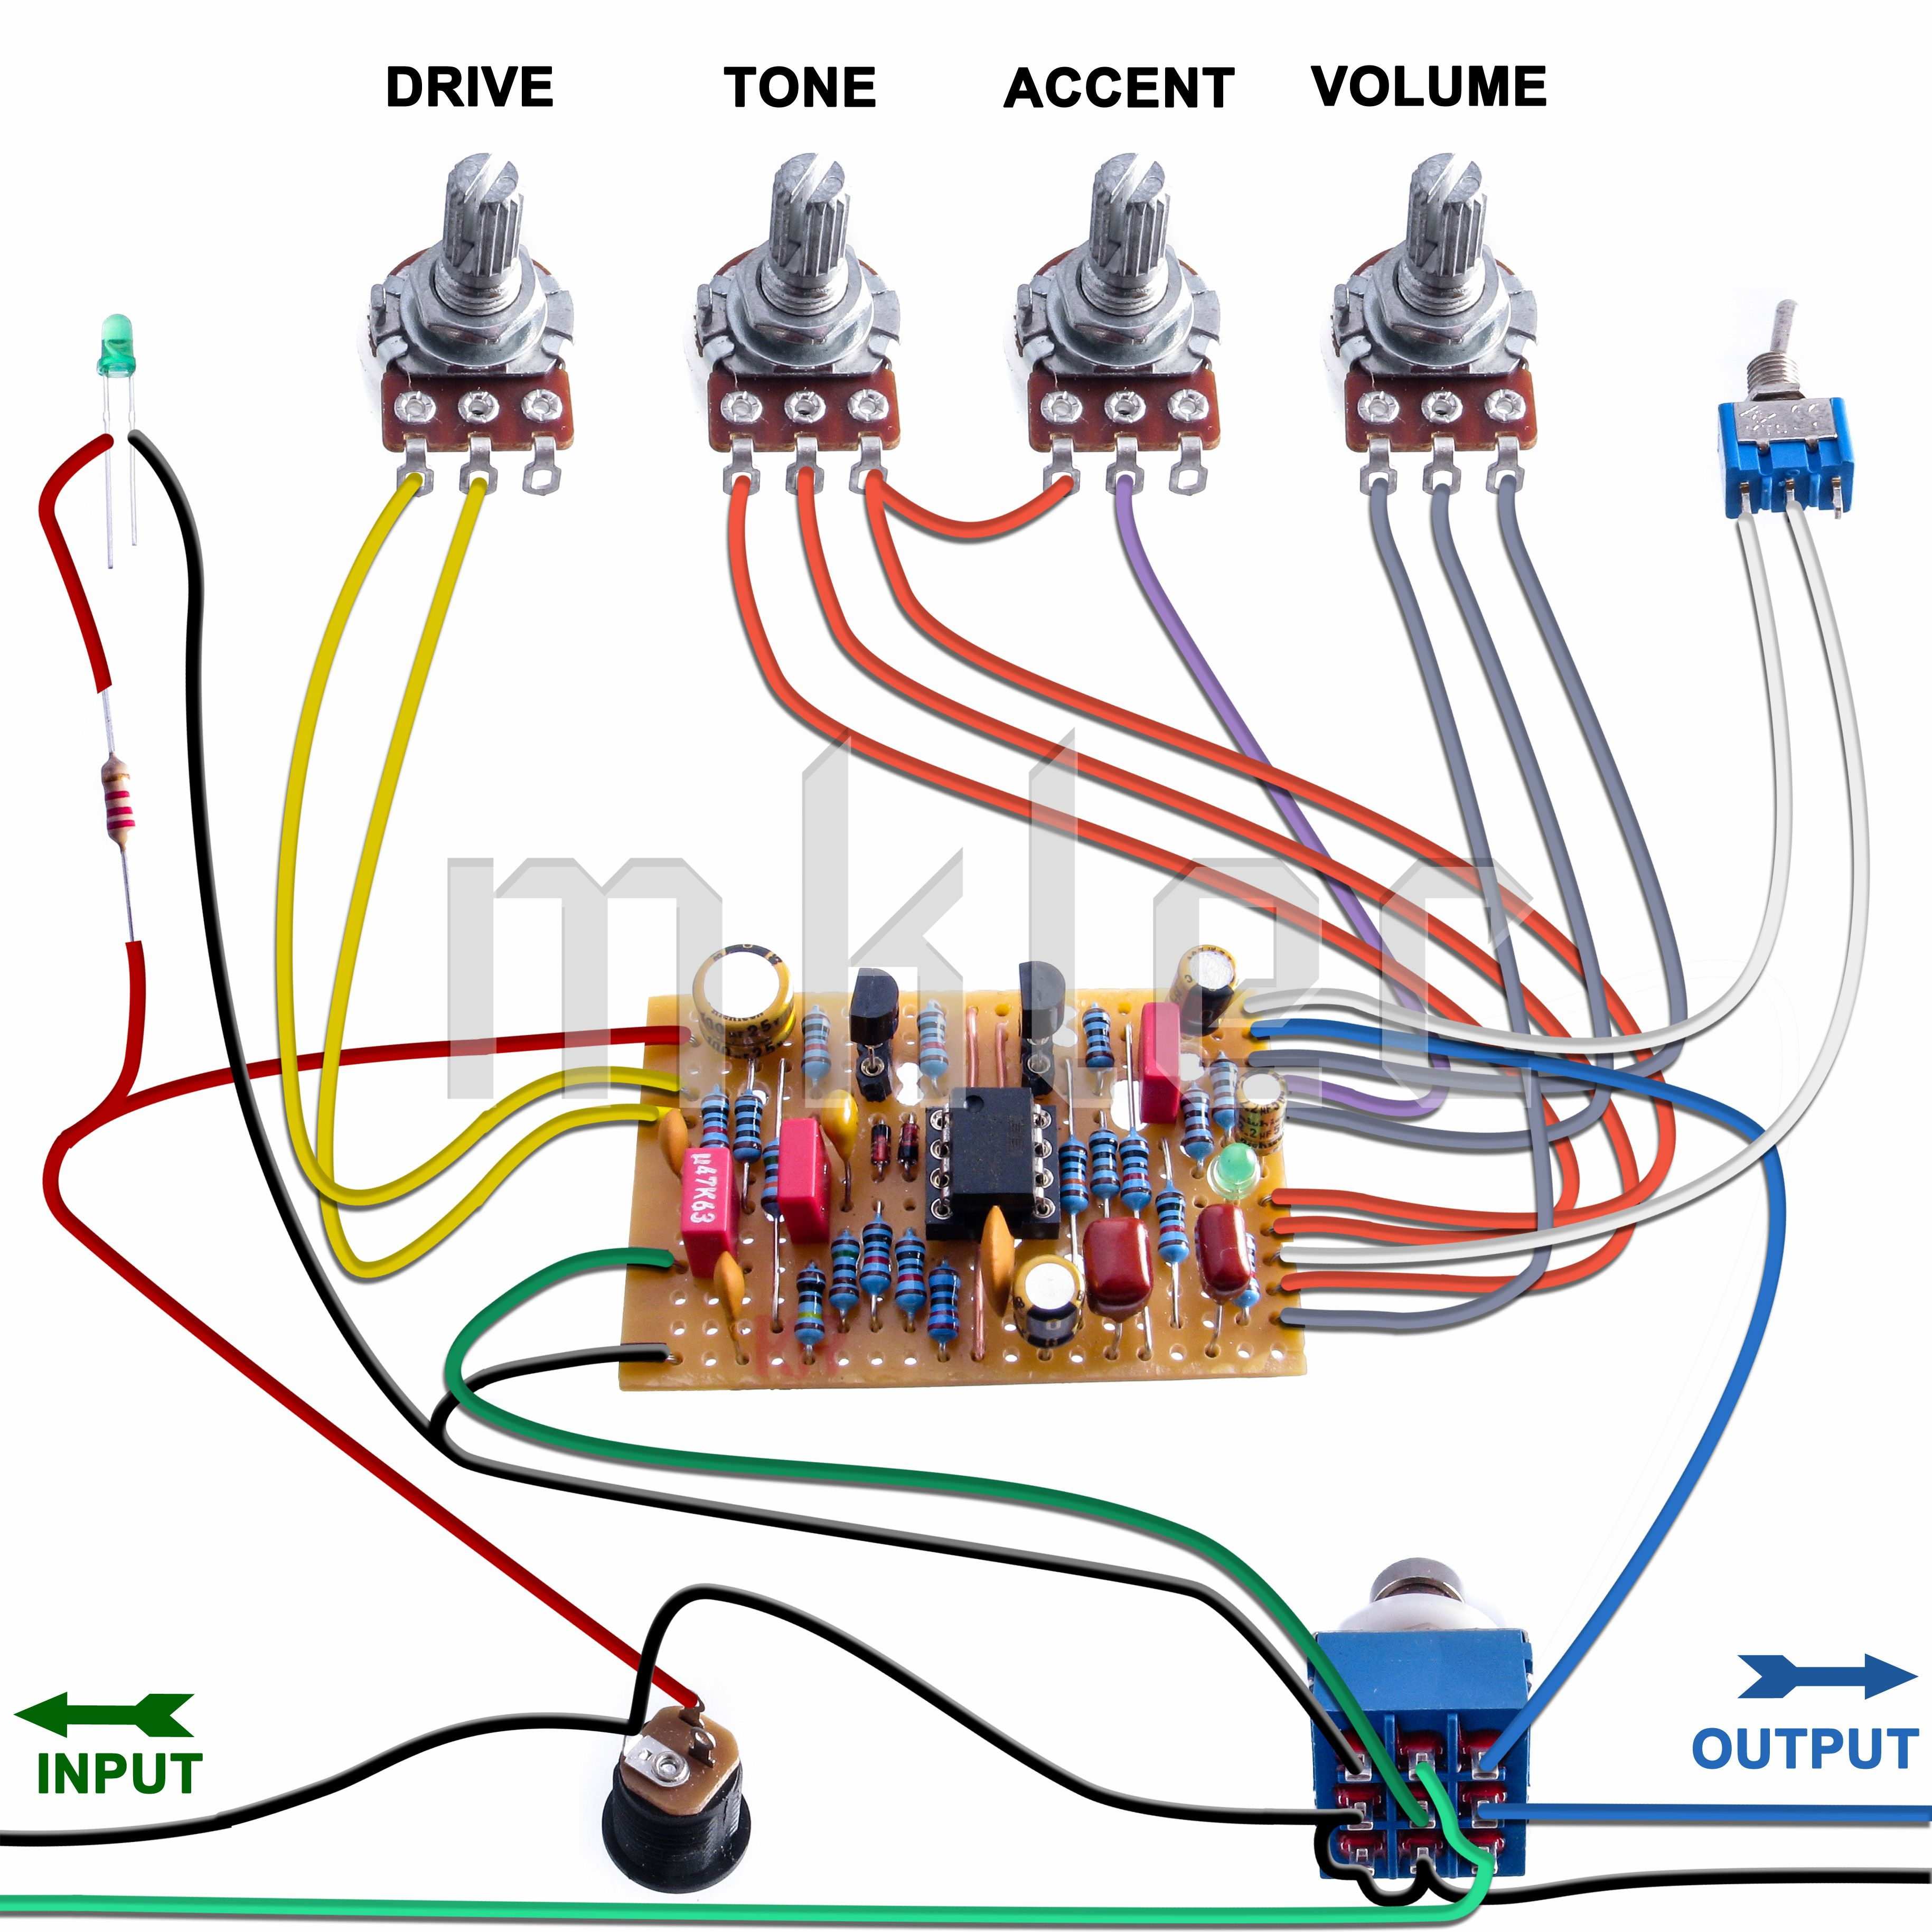 guitar effects pedal offboard wiring demystified guitar wiring electric guitar wiring guitar effects pedal offboard wiring [ 3658 x 3658 Pixel ]